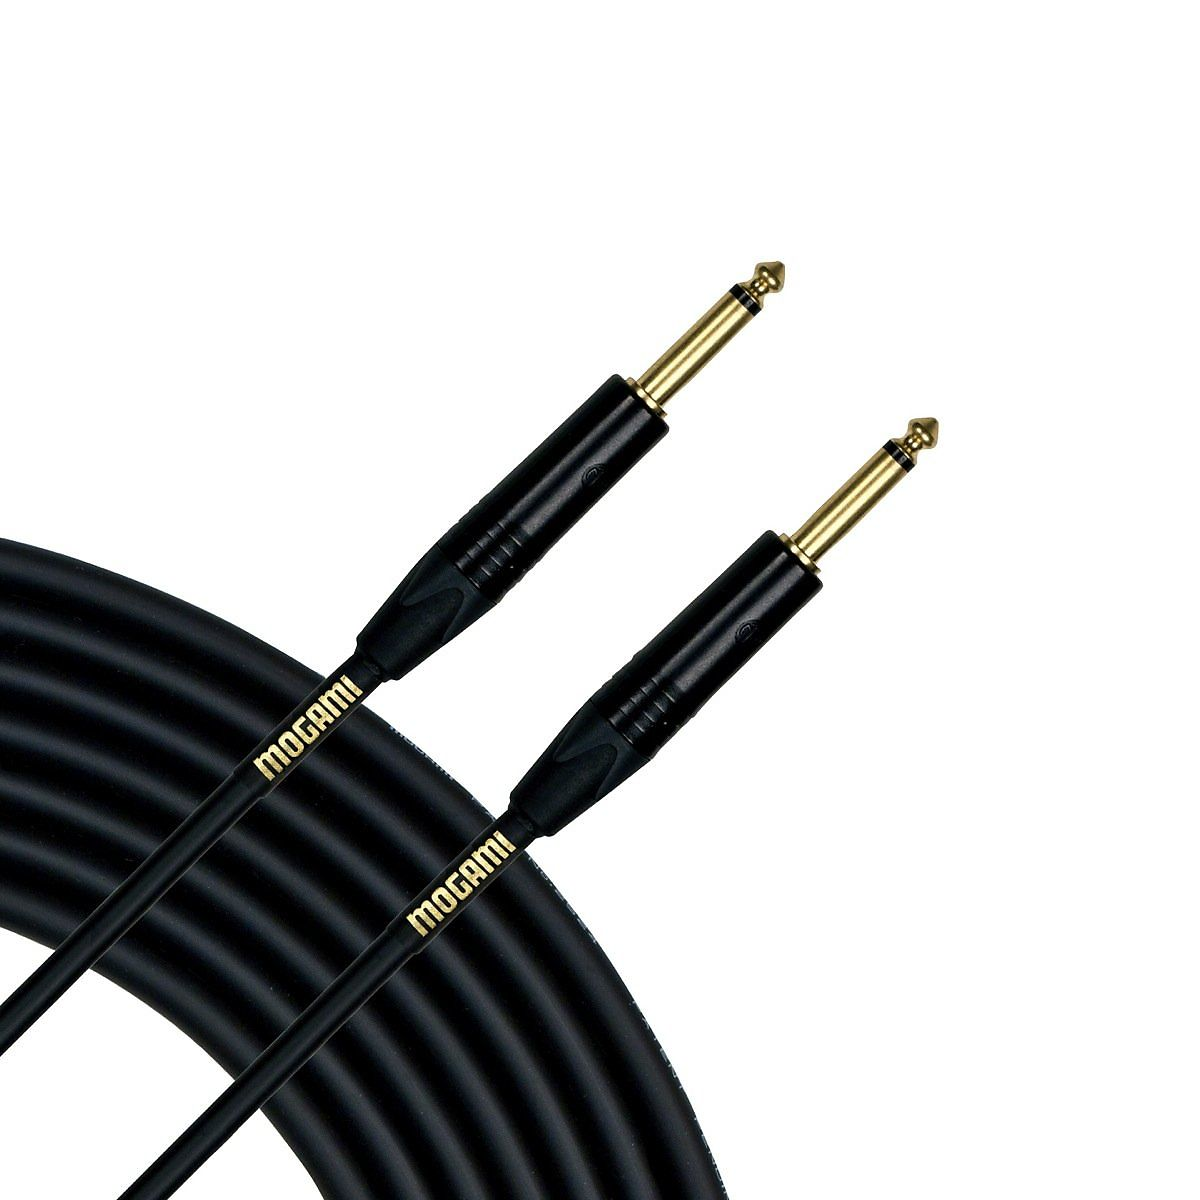 Mogami Gold Guitar/Instrument Cable, 6 Foot